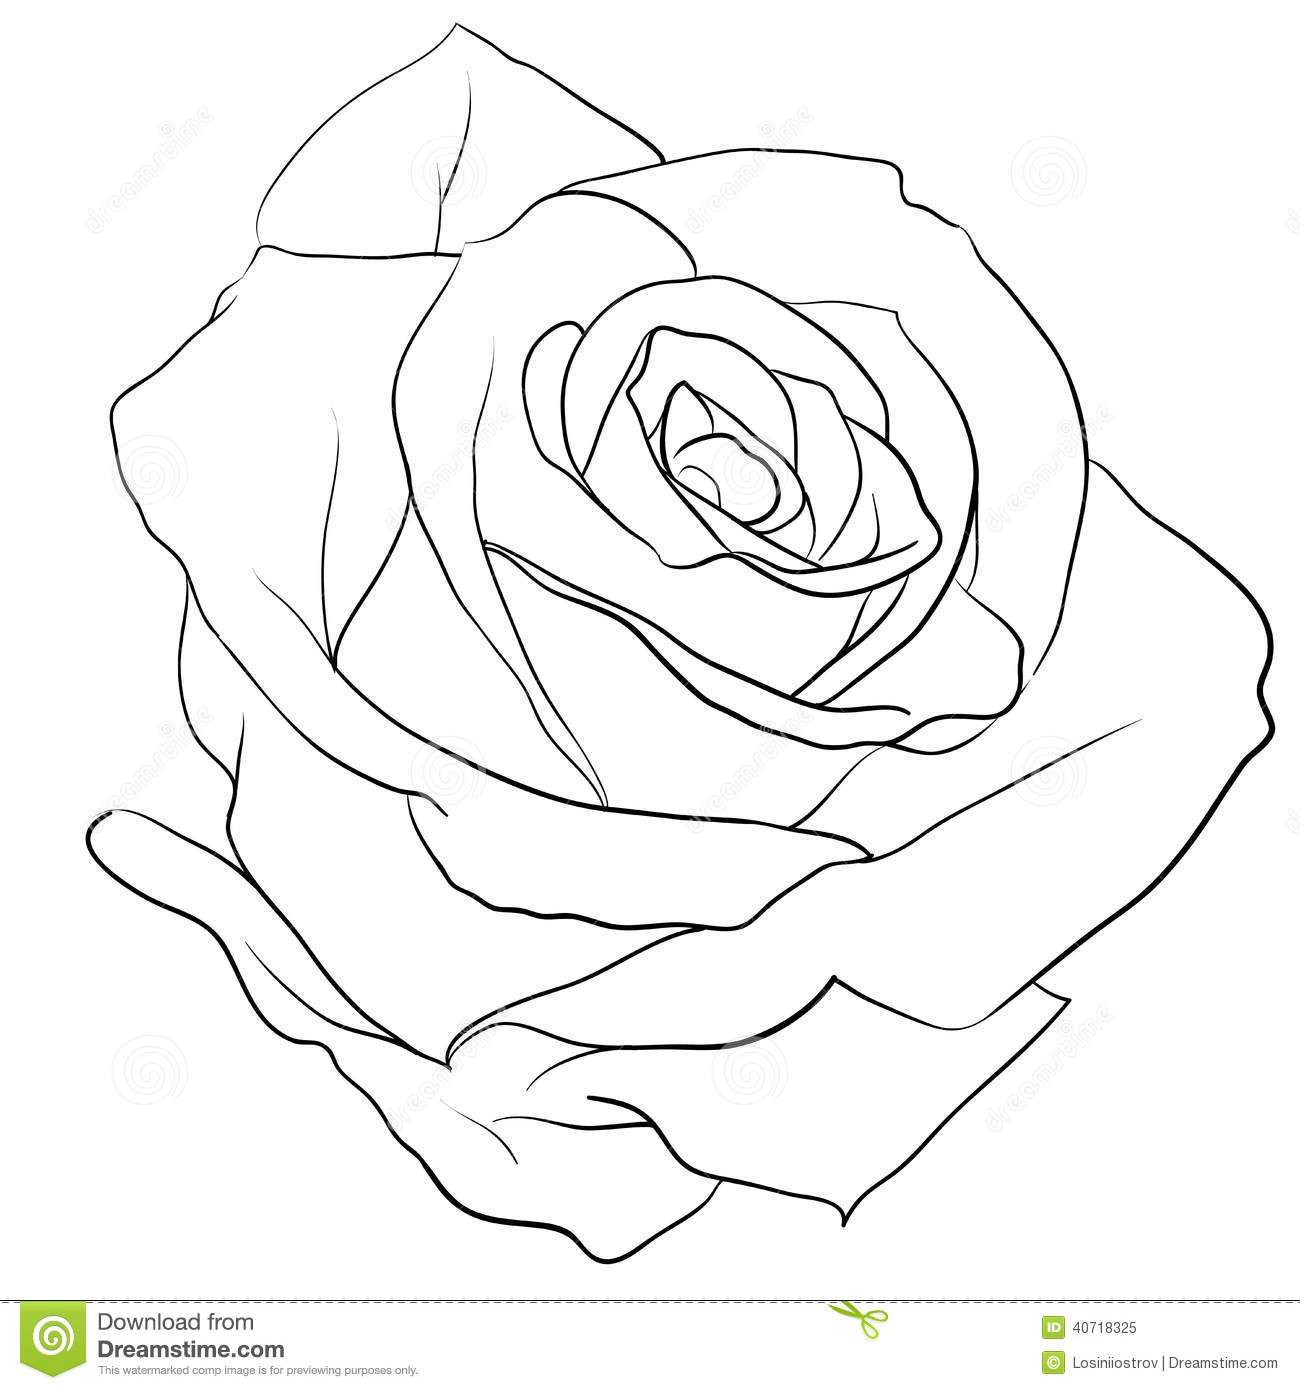 1300x1390 Rosebud Rose Black White Like Tattoo With Realistic